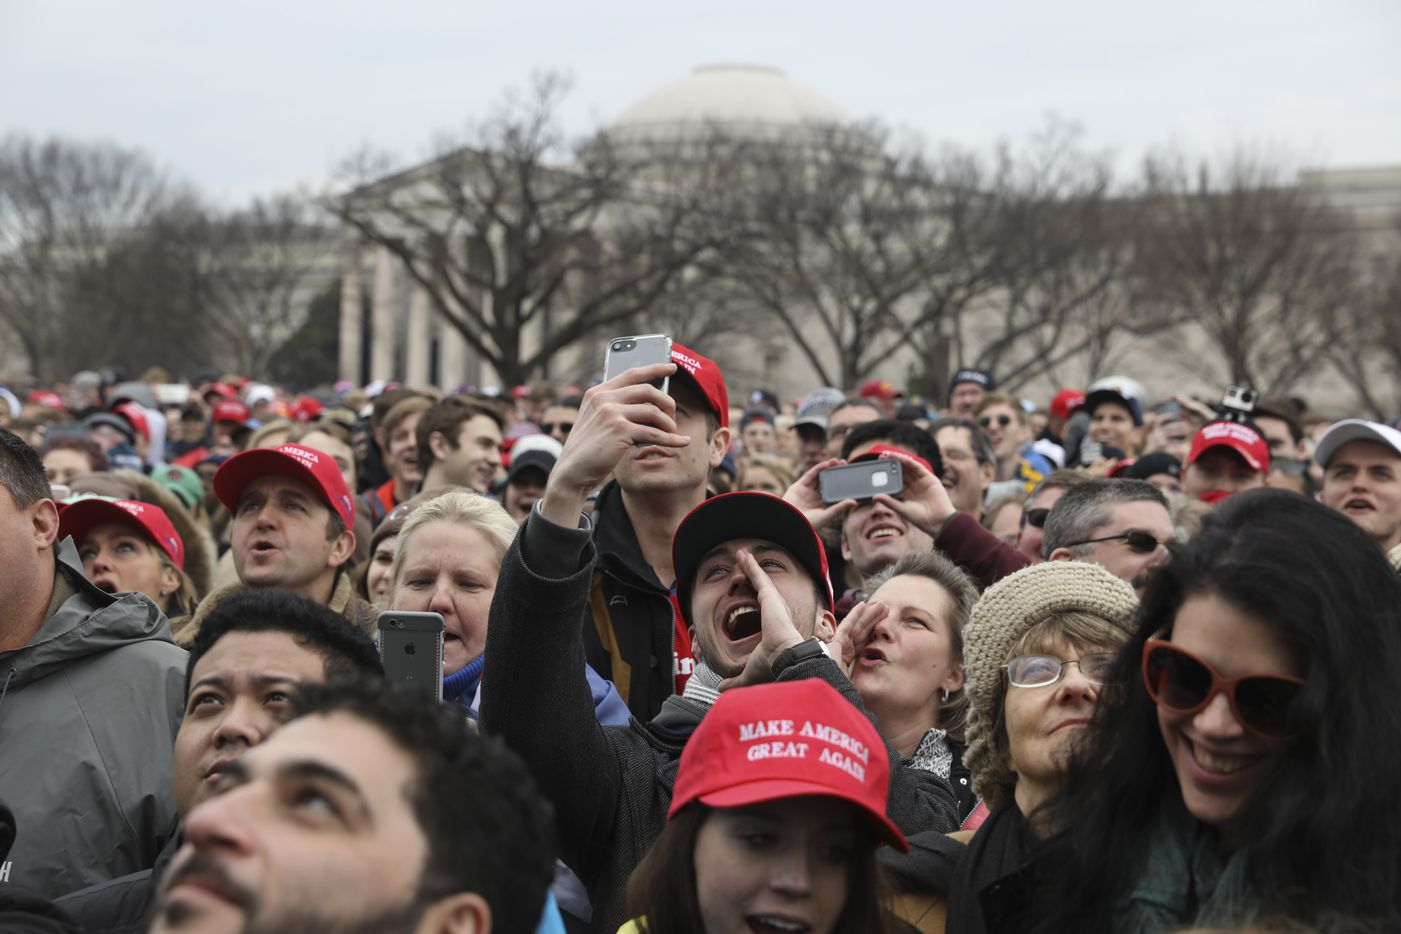 People gather on the National Mall for the inauguration of President Donald Trump at the U.S. Capitol in Washington, Jan. 20, 2017. (Todd Heisler/The New York Times)